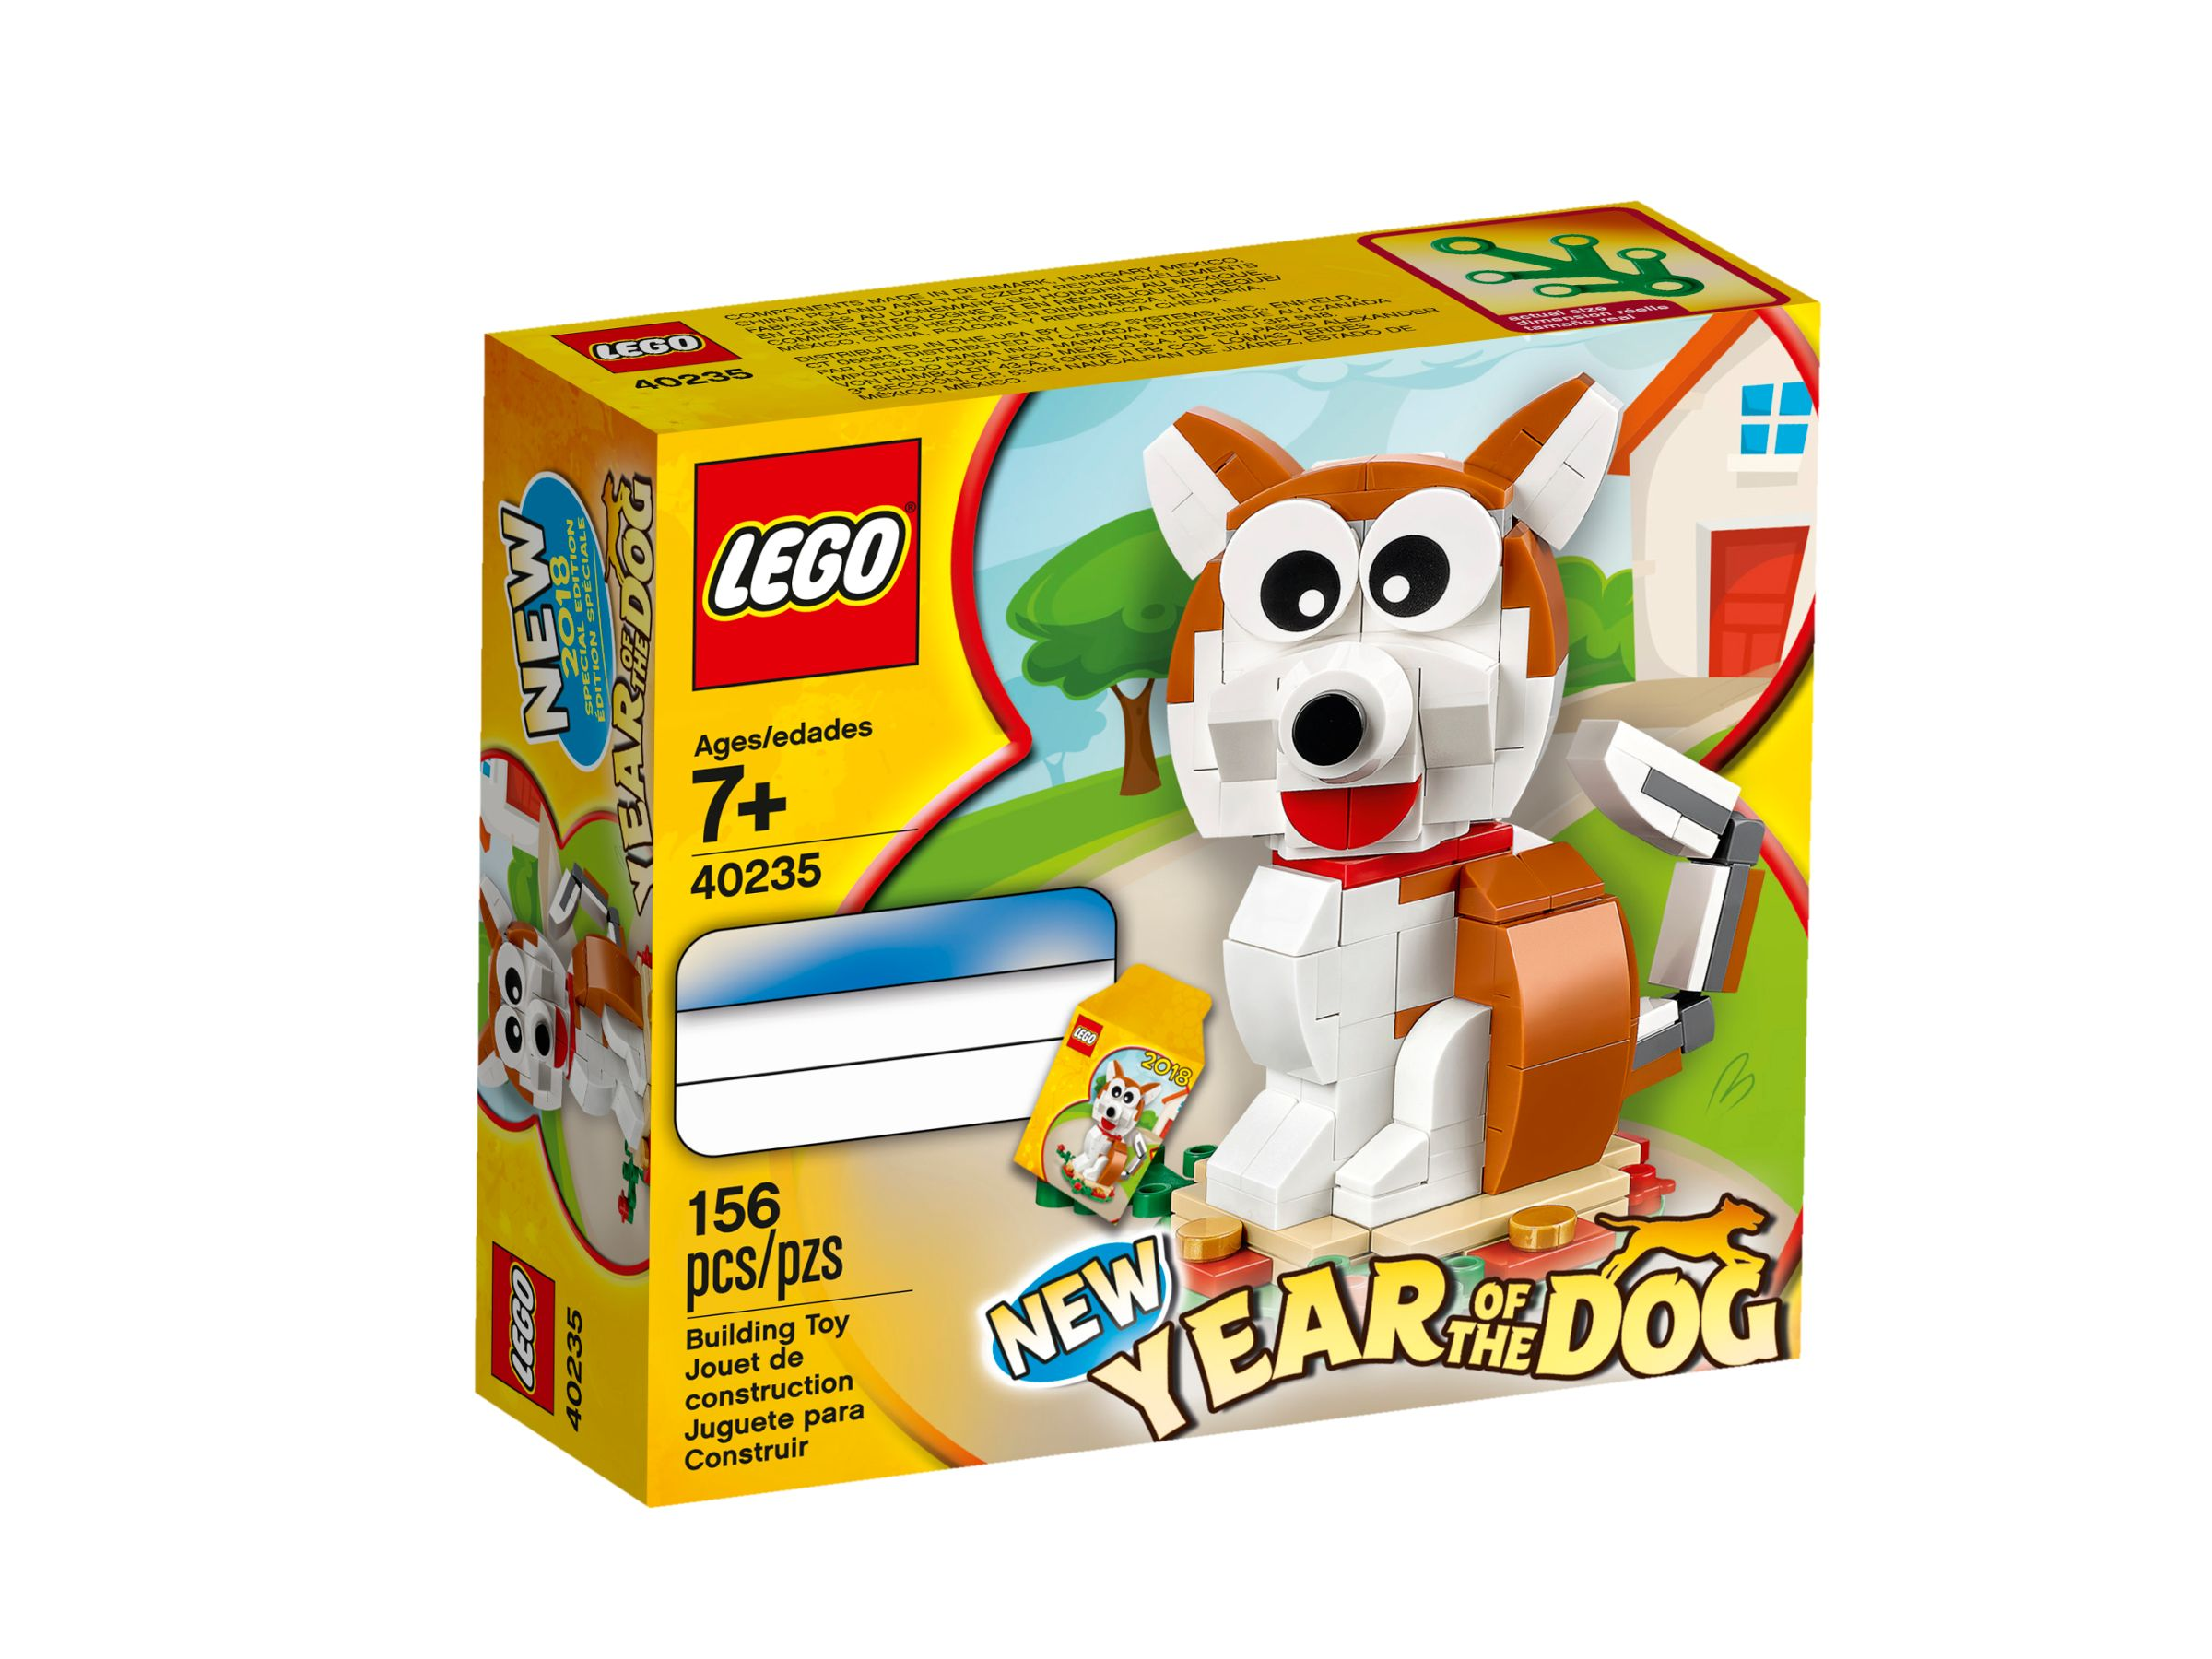 LEGO Miscellaneous 40235 Year of the Dog LEGO_40235_alt1.jpg